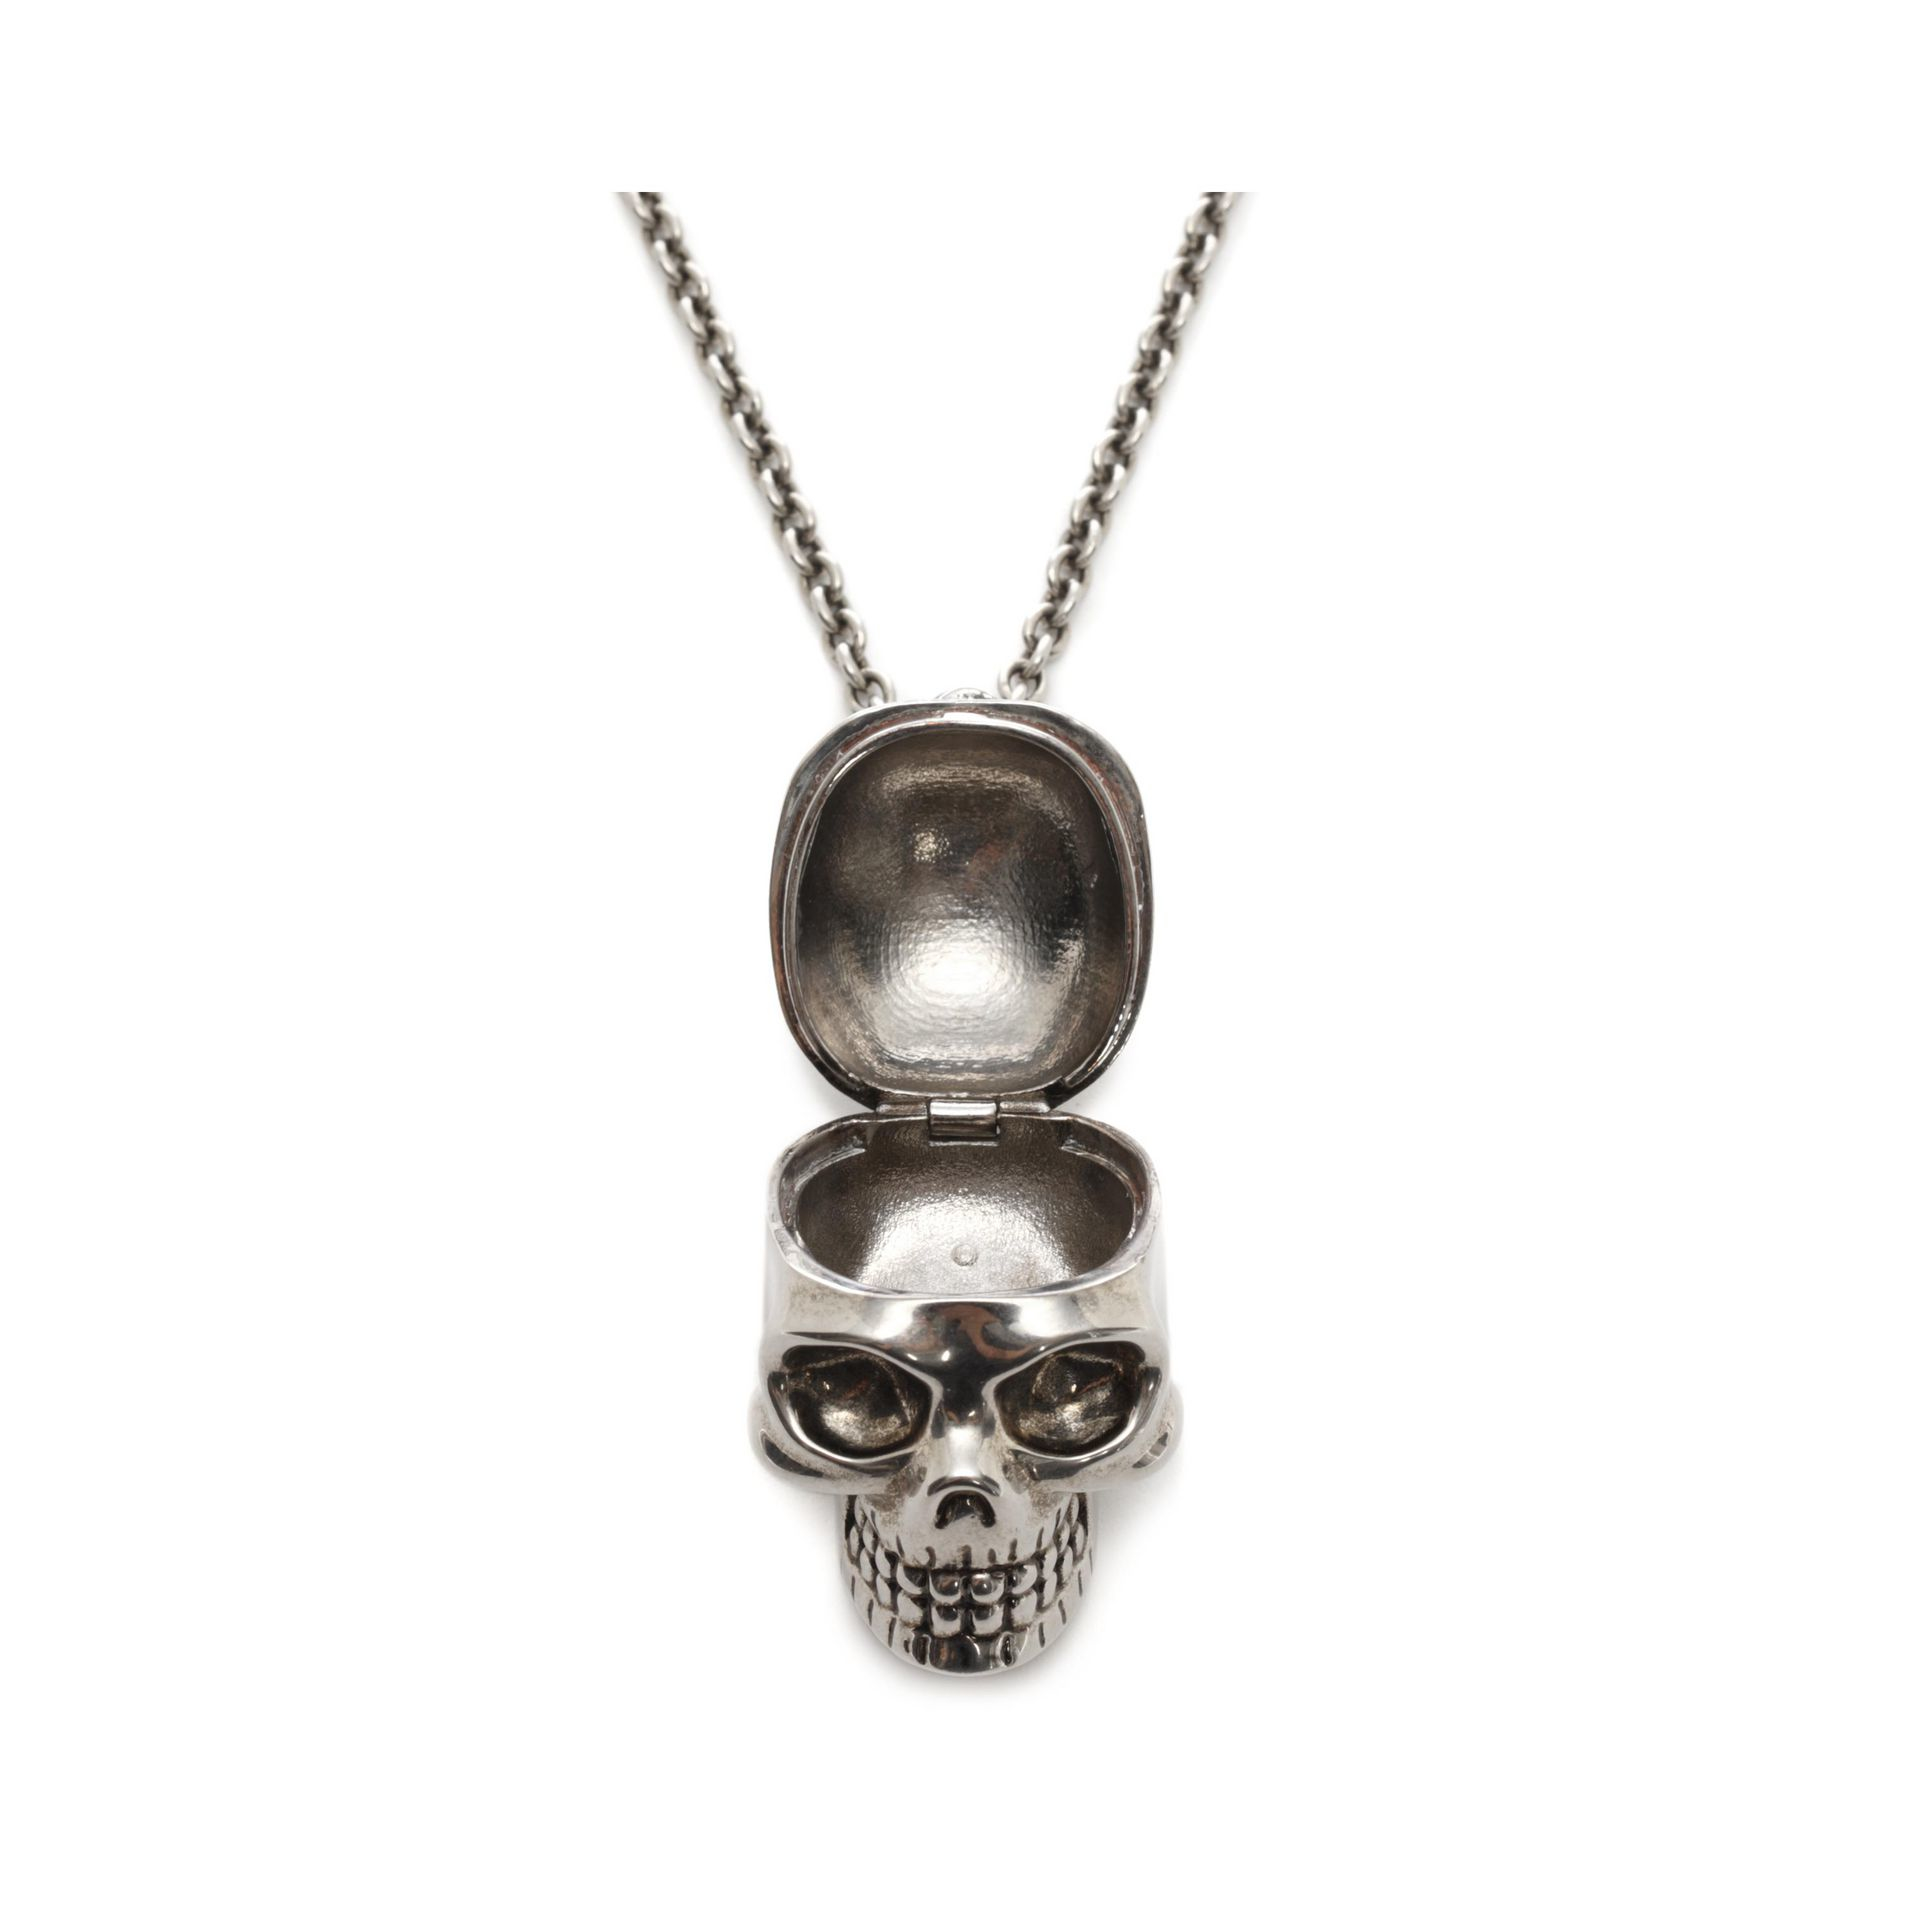 Lyst Alexander Mcqueen Doctor Skull Necklace in Black for Men